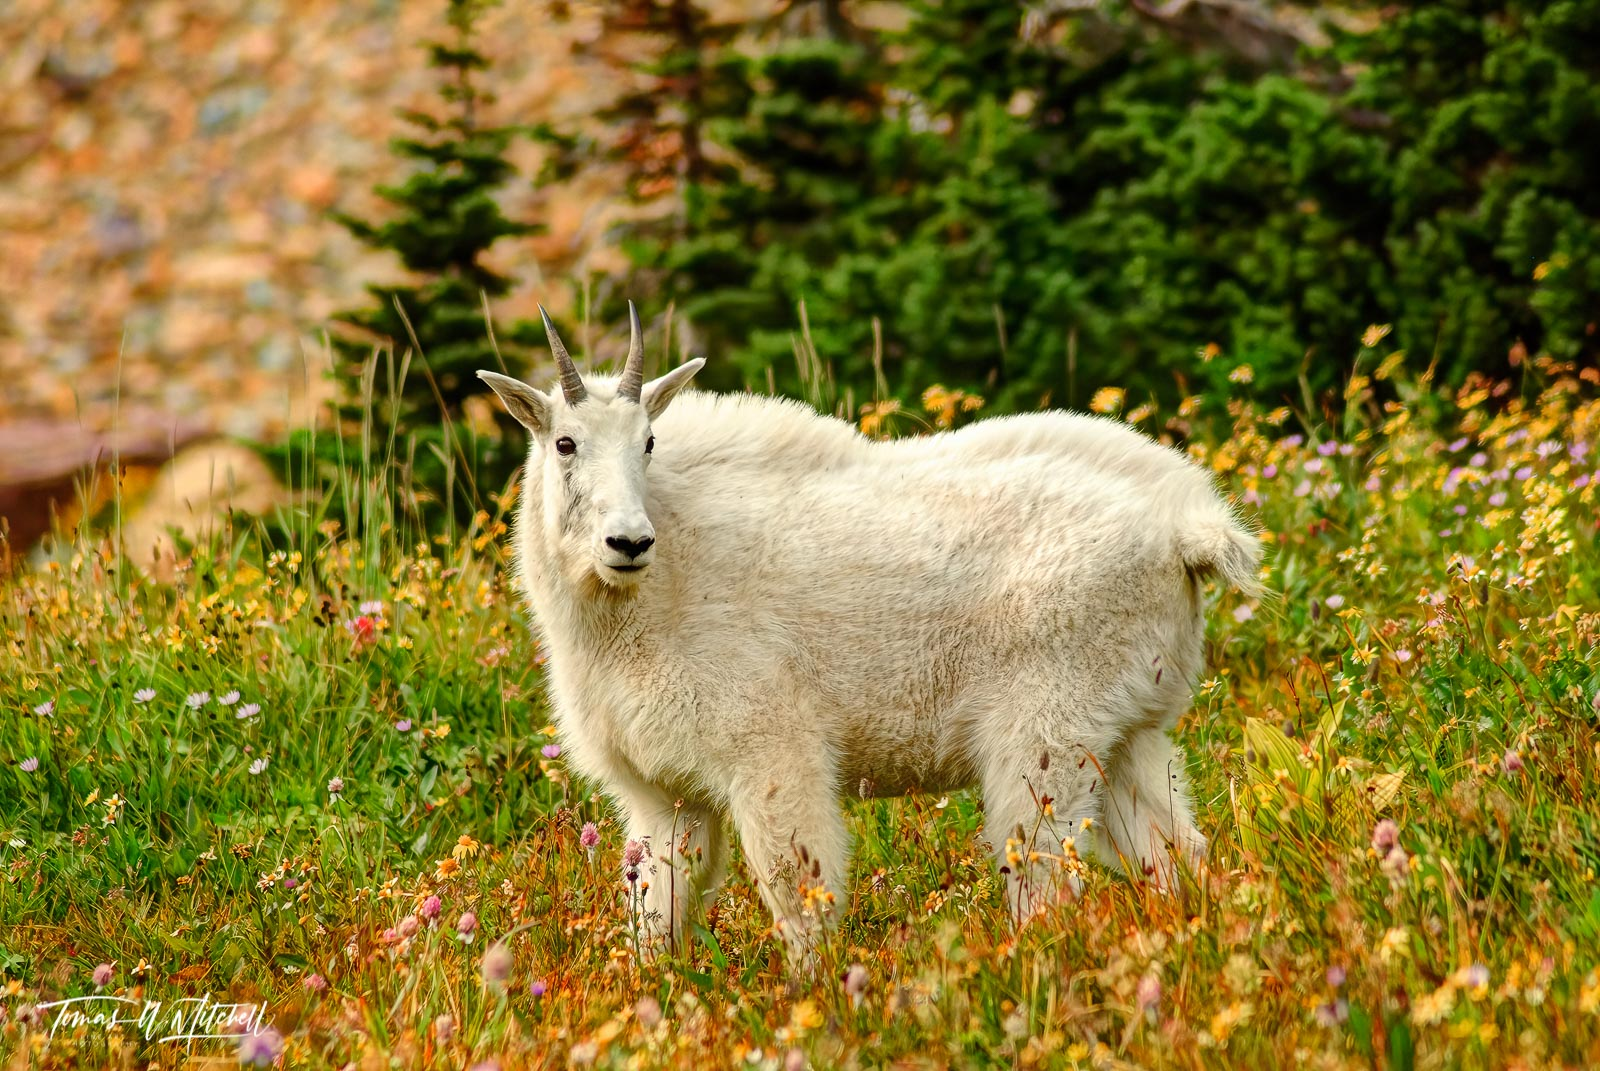 Limited Edition of 50 Museum Grade, Fine Art Prints. I was watching a heard of mountain goats in Glacier National Park MT when...